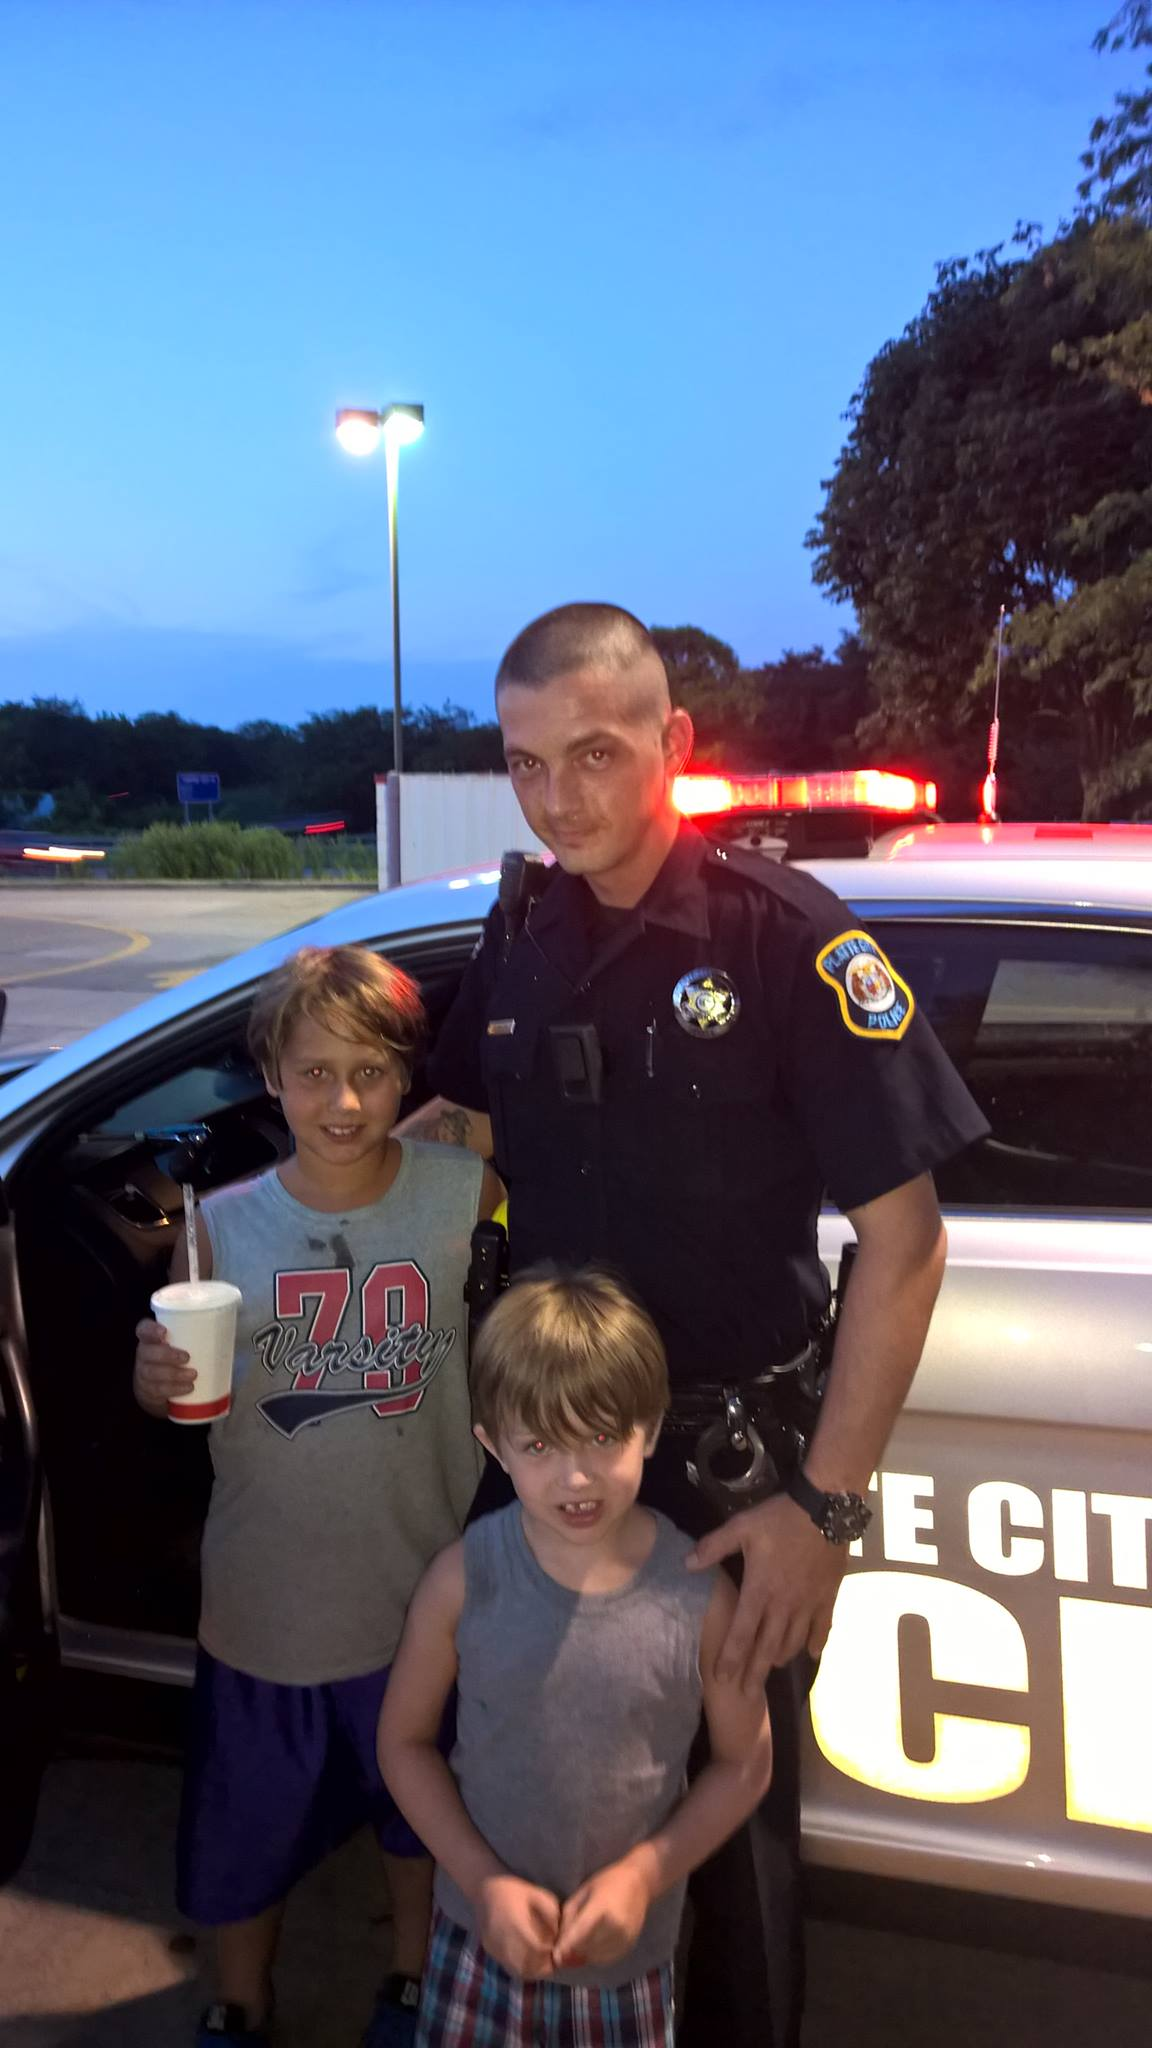 Contributed photo Platte City Police Department officer Andy Servaes poses with Thomas Palmer, 9, and Logan Trucke, 5, of Iowa outside of the Arby's restaurant in Platte City on Friday, Aug. 7. The photo, posted to Facebook, went viral after Servaes spent his dinner break that night answering the boys' questions and showing them his patrol vehicle.